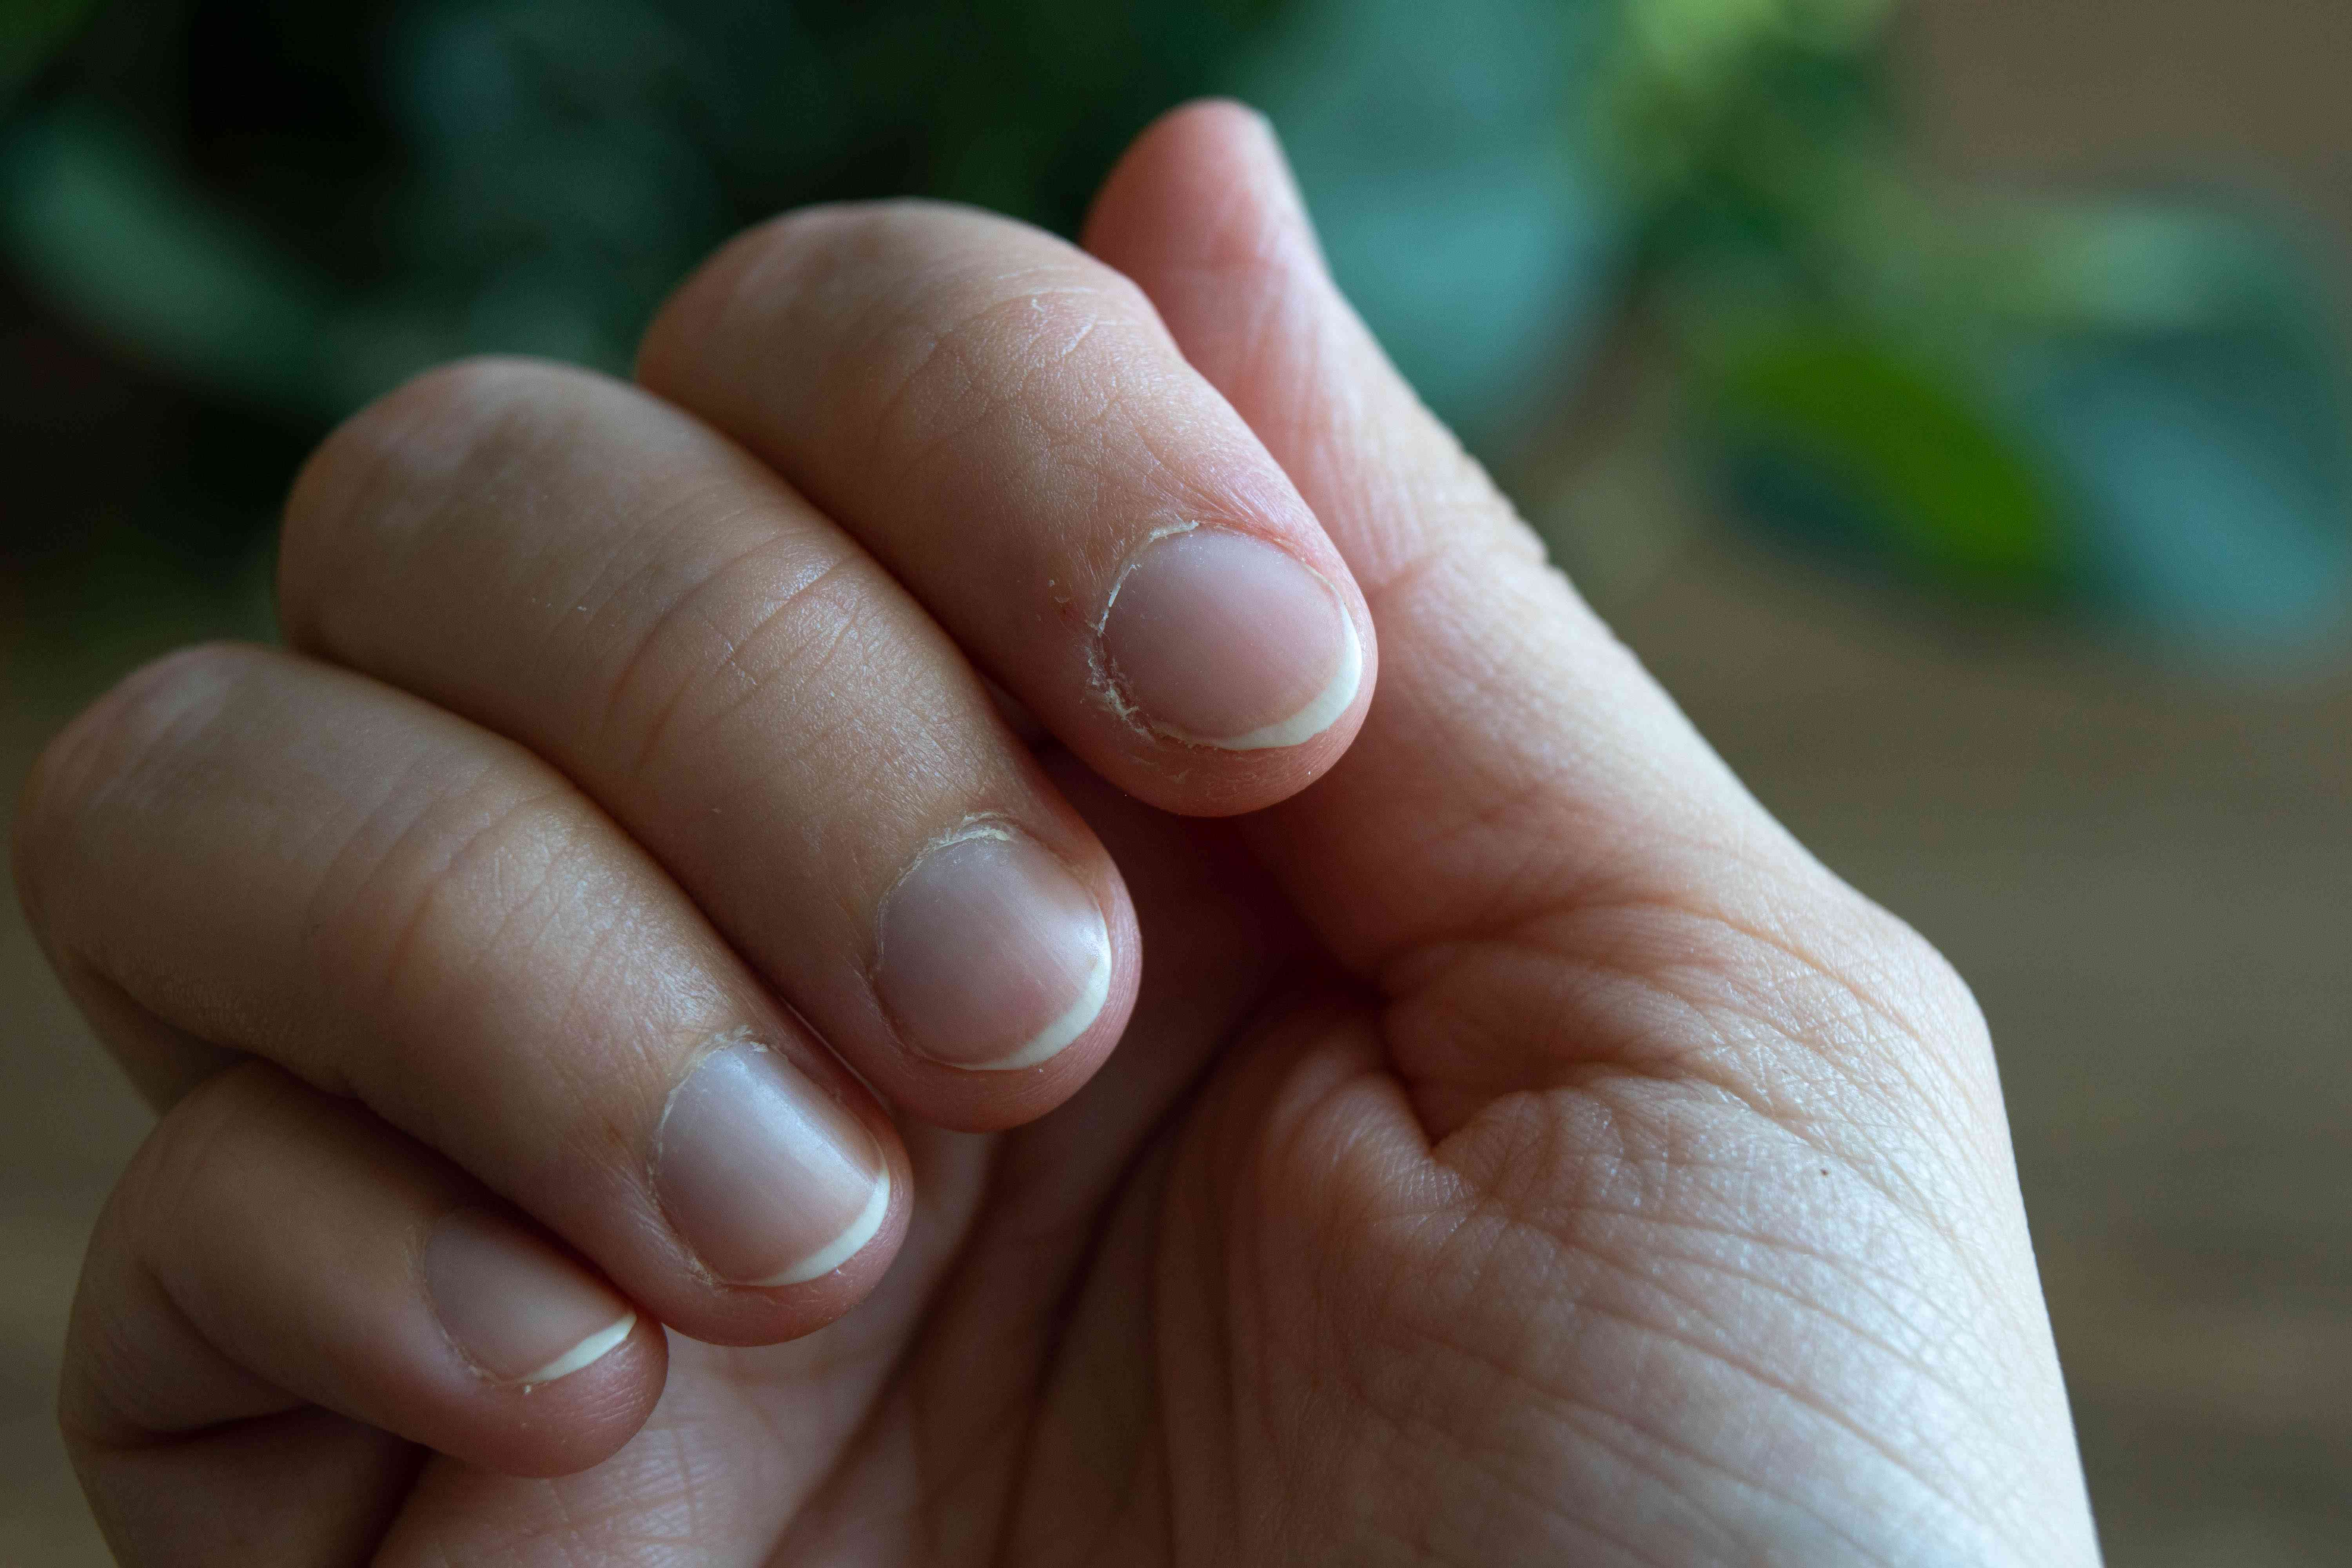 close shot of curled hand showing healthy cuticles and nails